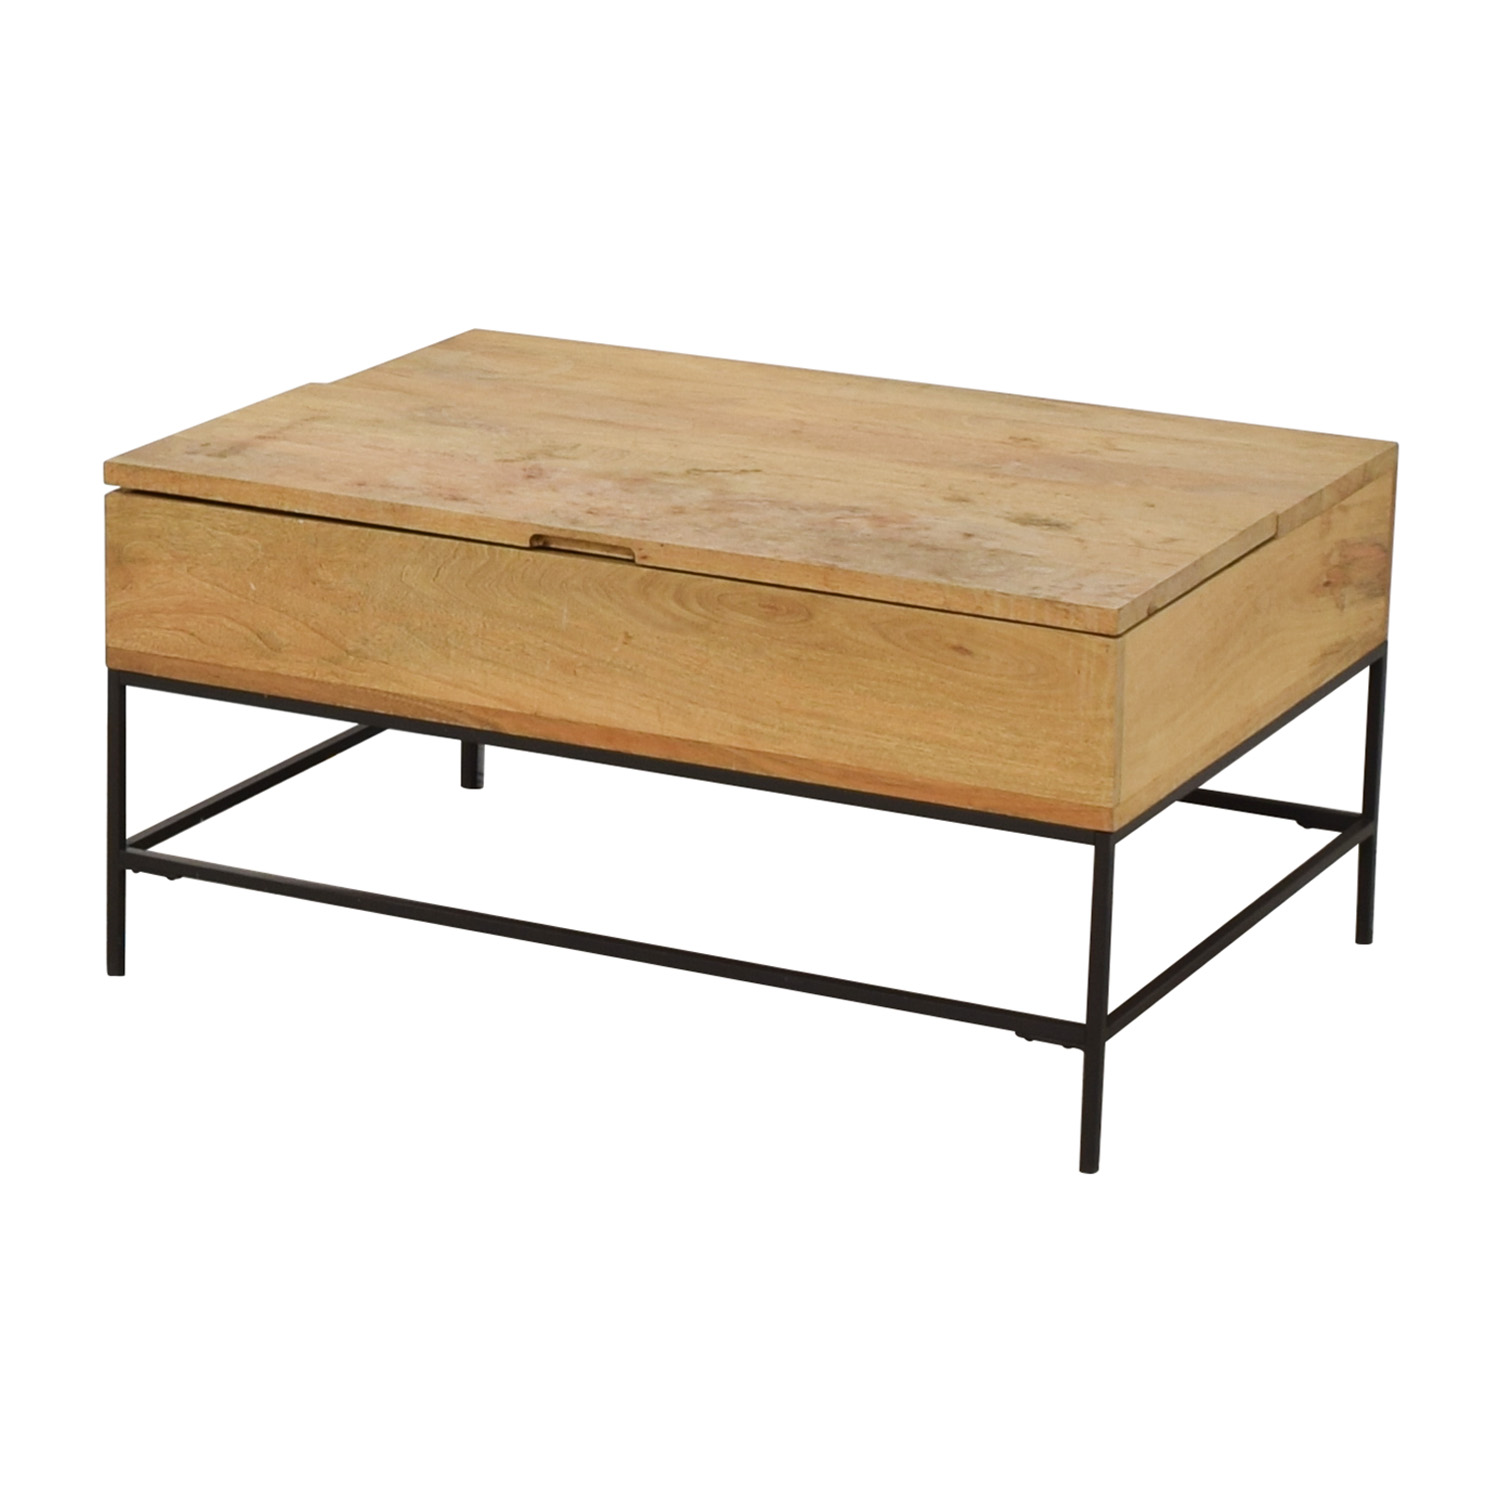 West Elm West Elm Raw Mango Lift-Top Storage Coffee Table Tables